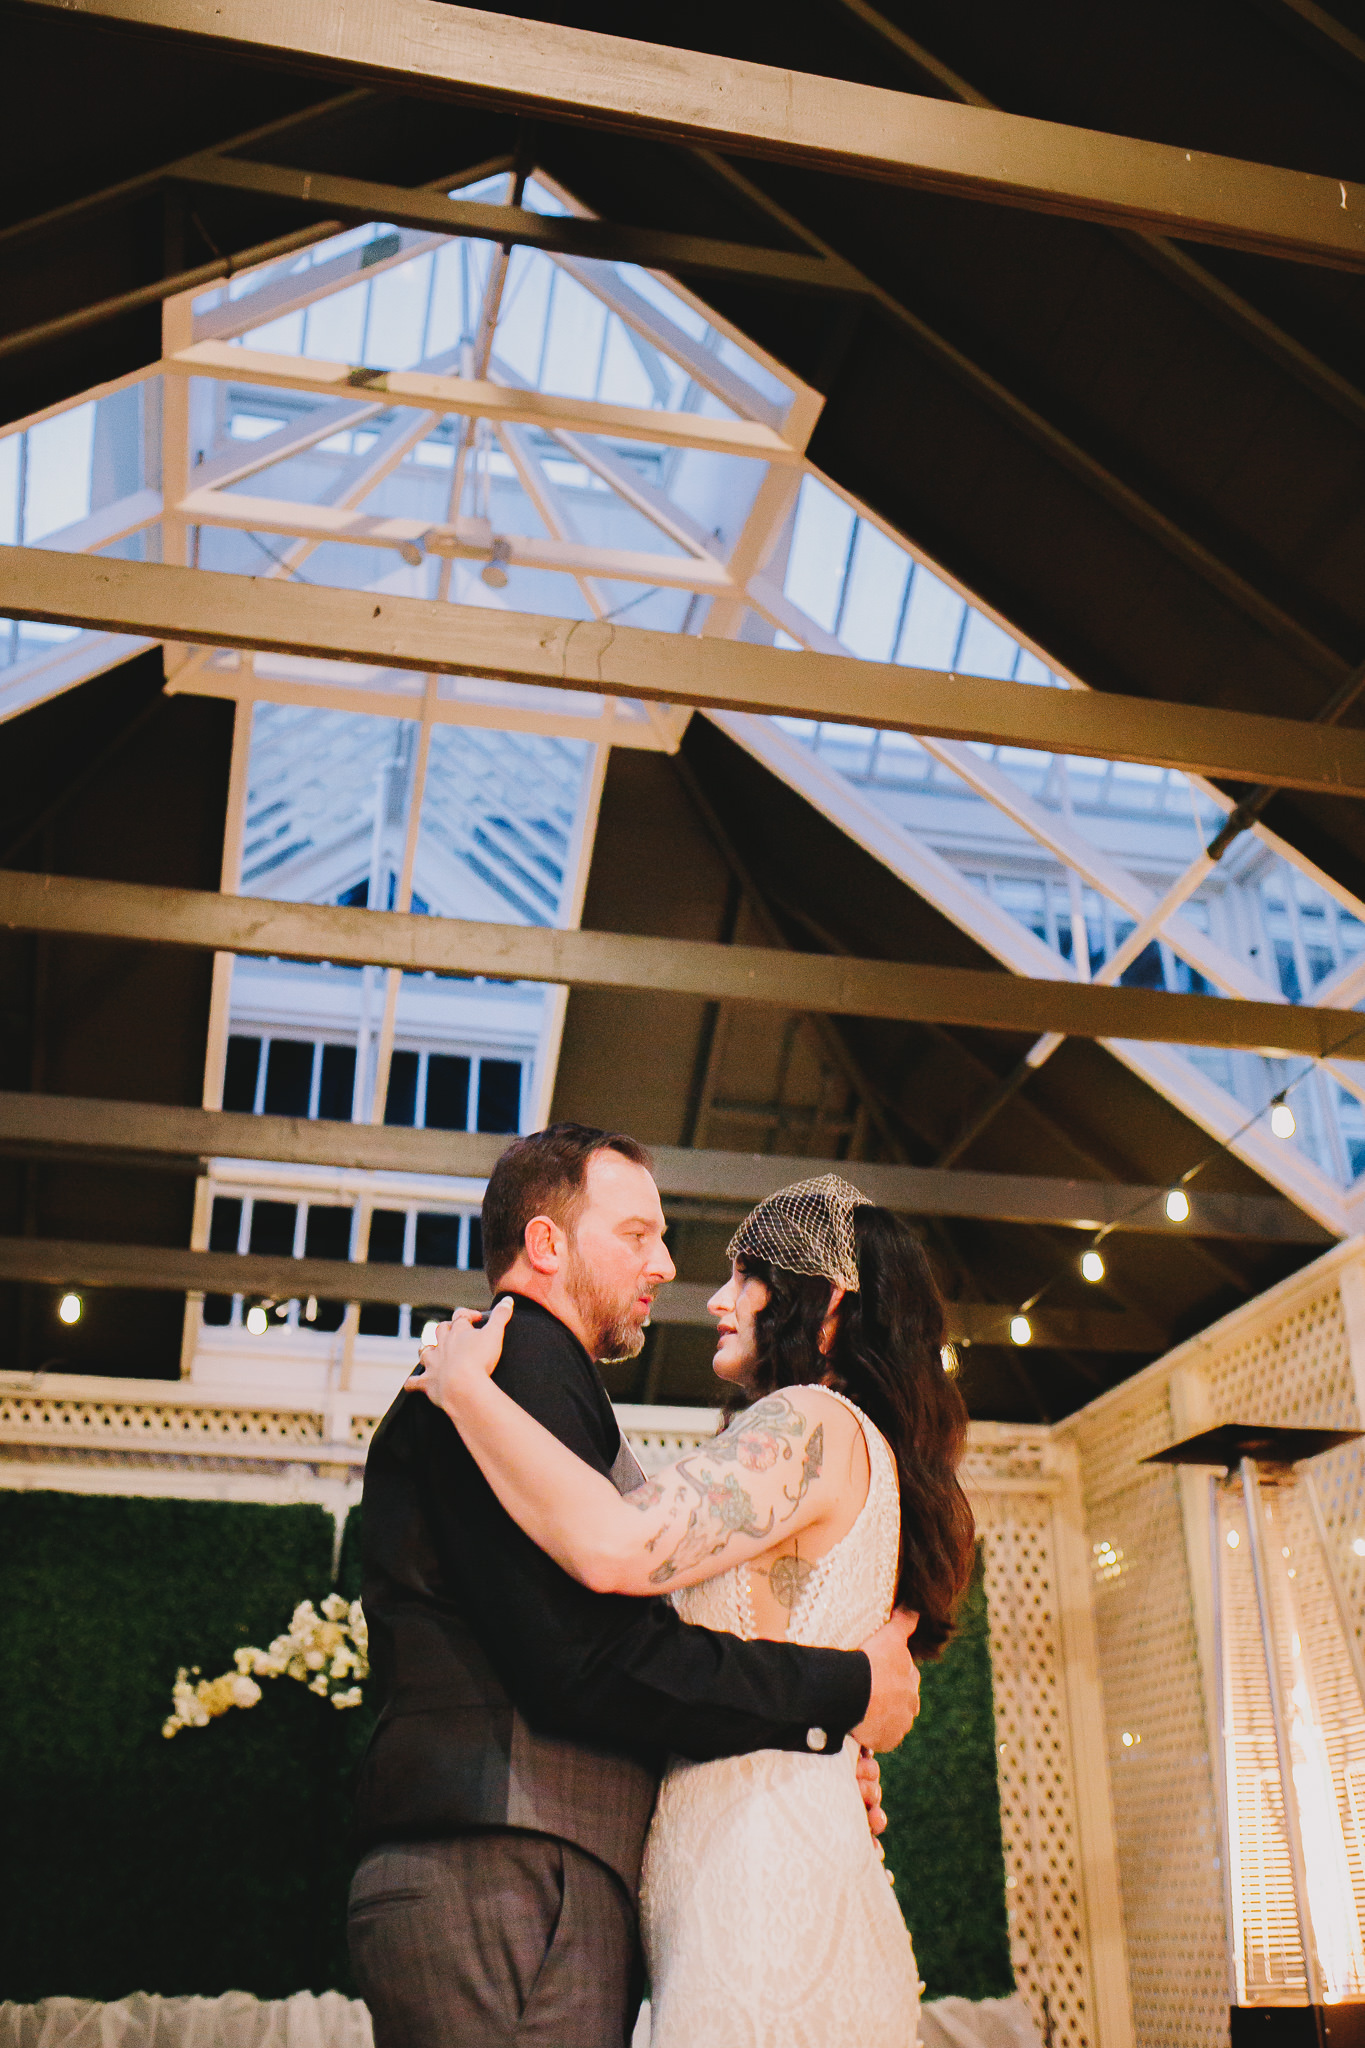 Archer Inspired Photography Sara and Aaron Winchester Mystery House NorCal San Jose California Wedding Photographer-523.jpg